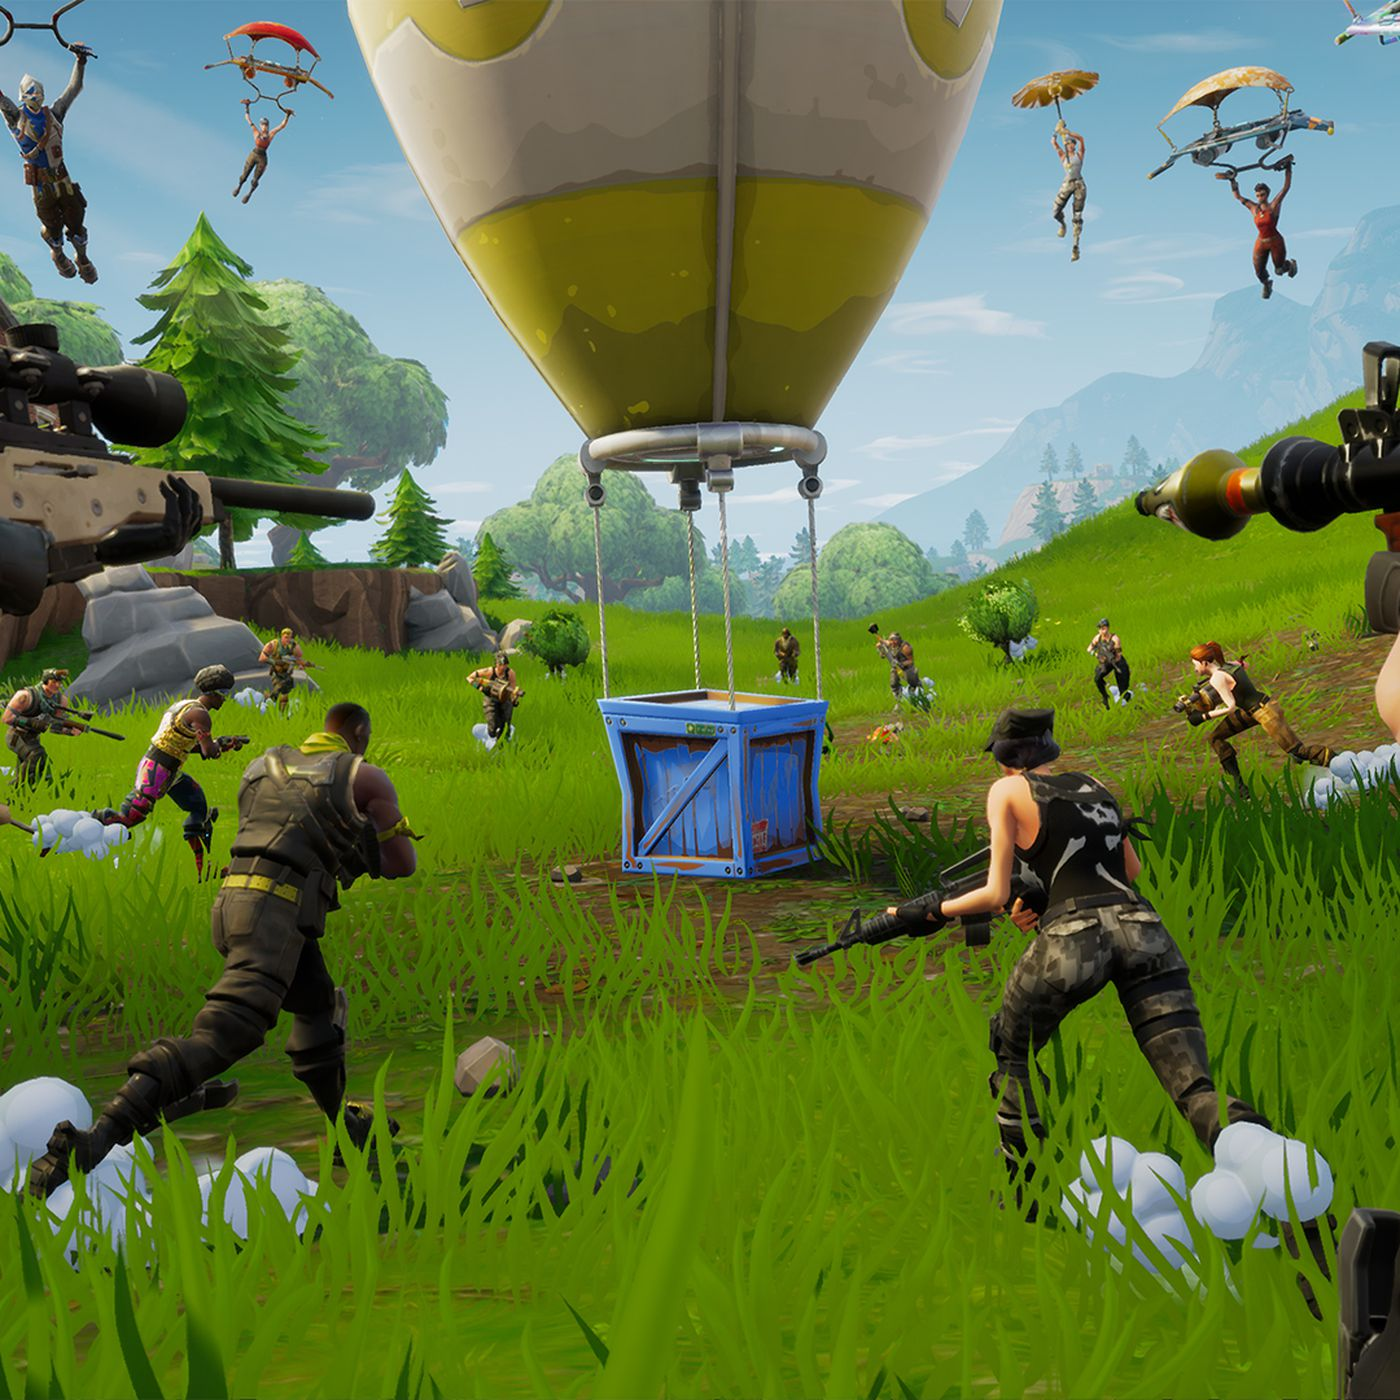 Calling Fortnite a battle royale game misses the point - Polygon